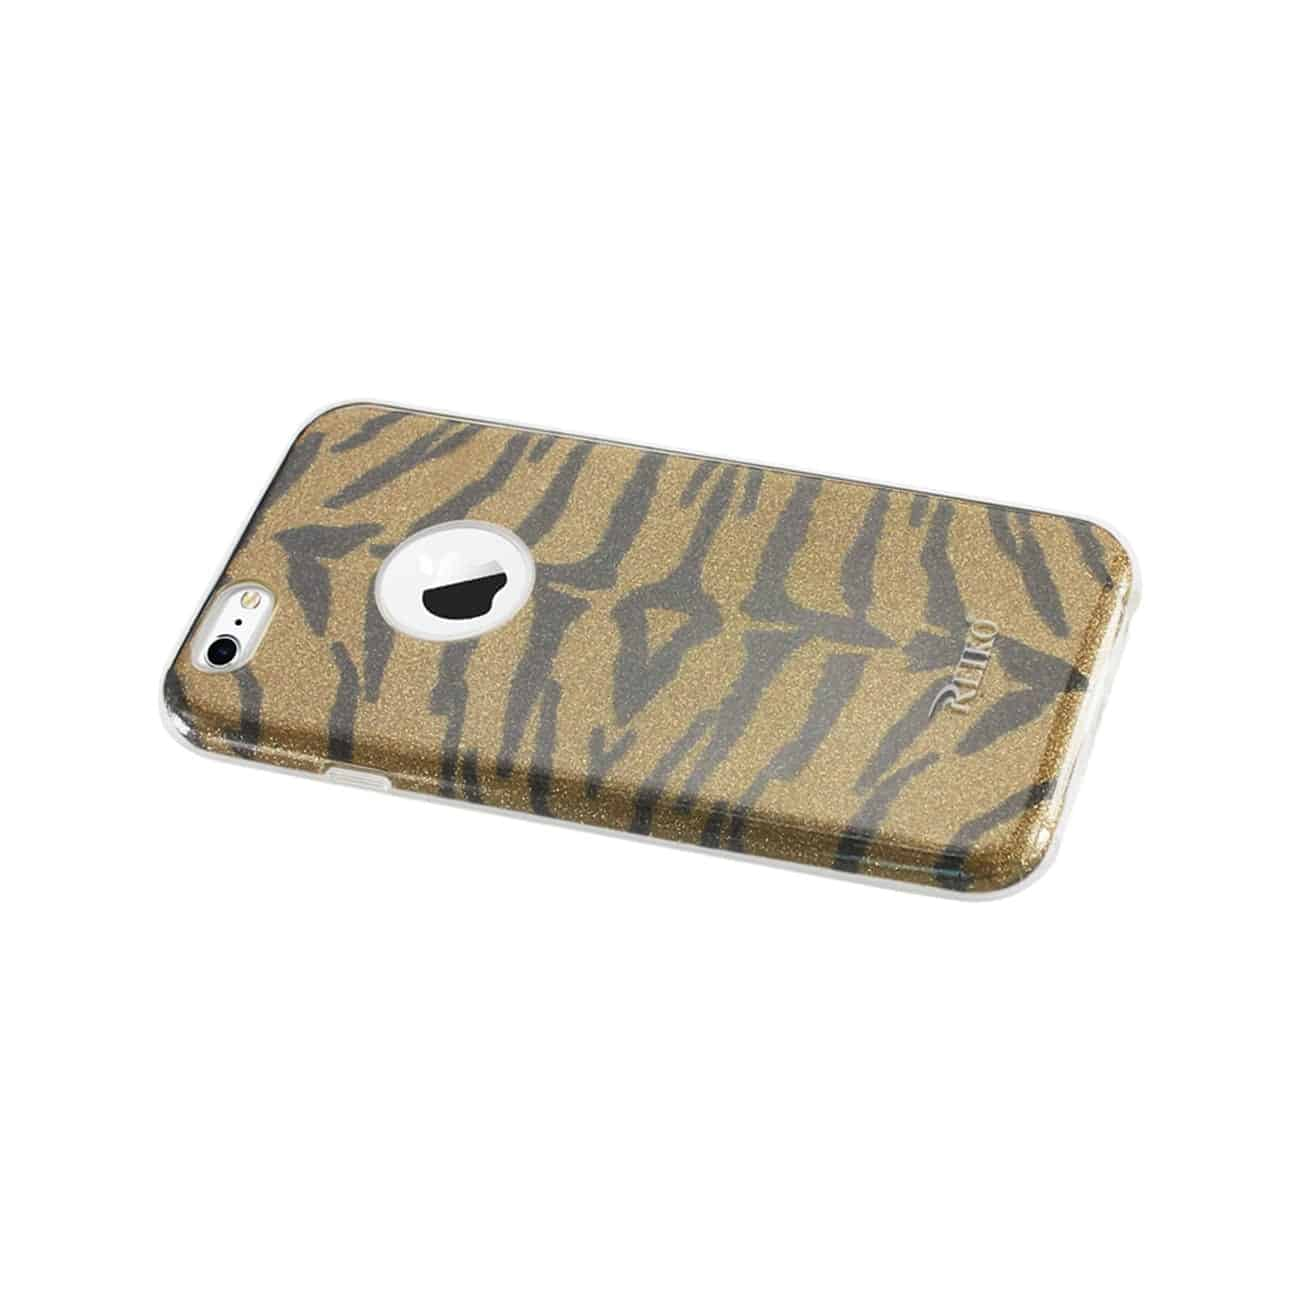 IPHONE 6/ 6S SHINE GLITTER SHIMMER TIGER STRIPE HYBRID CASE IN YELLOW